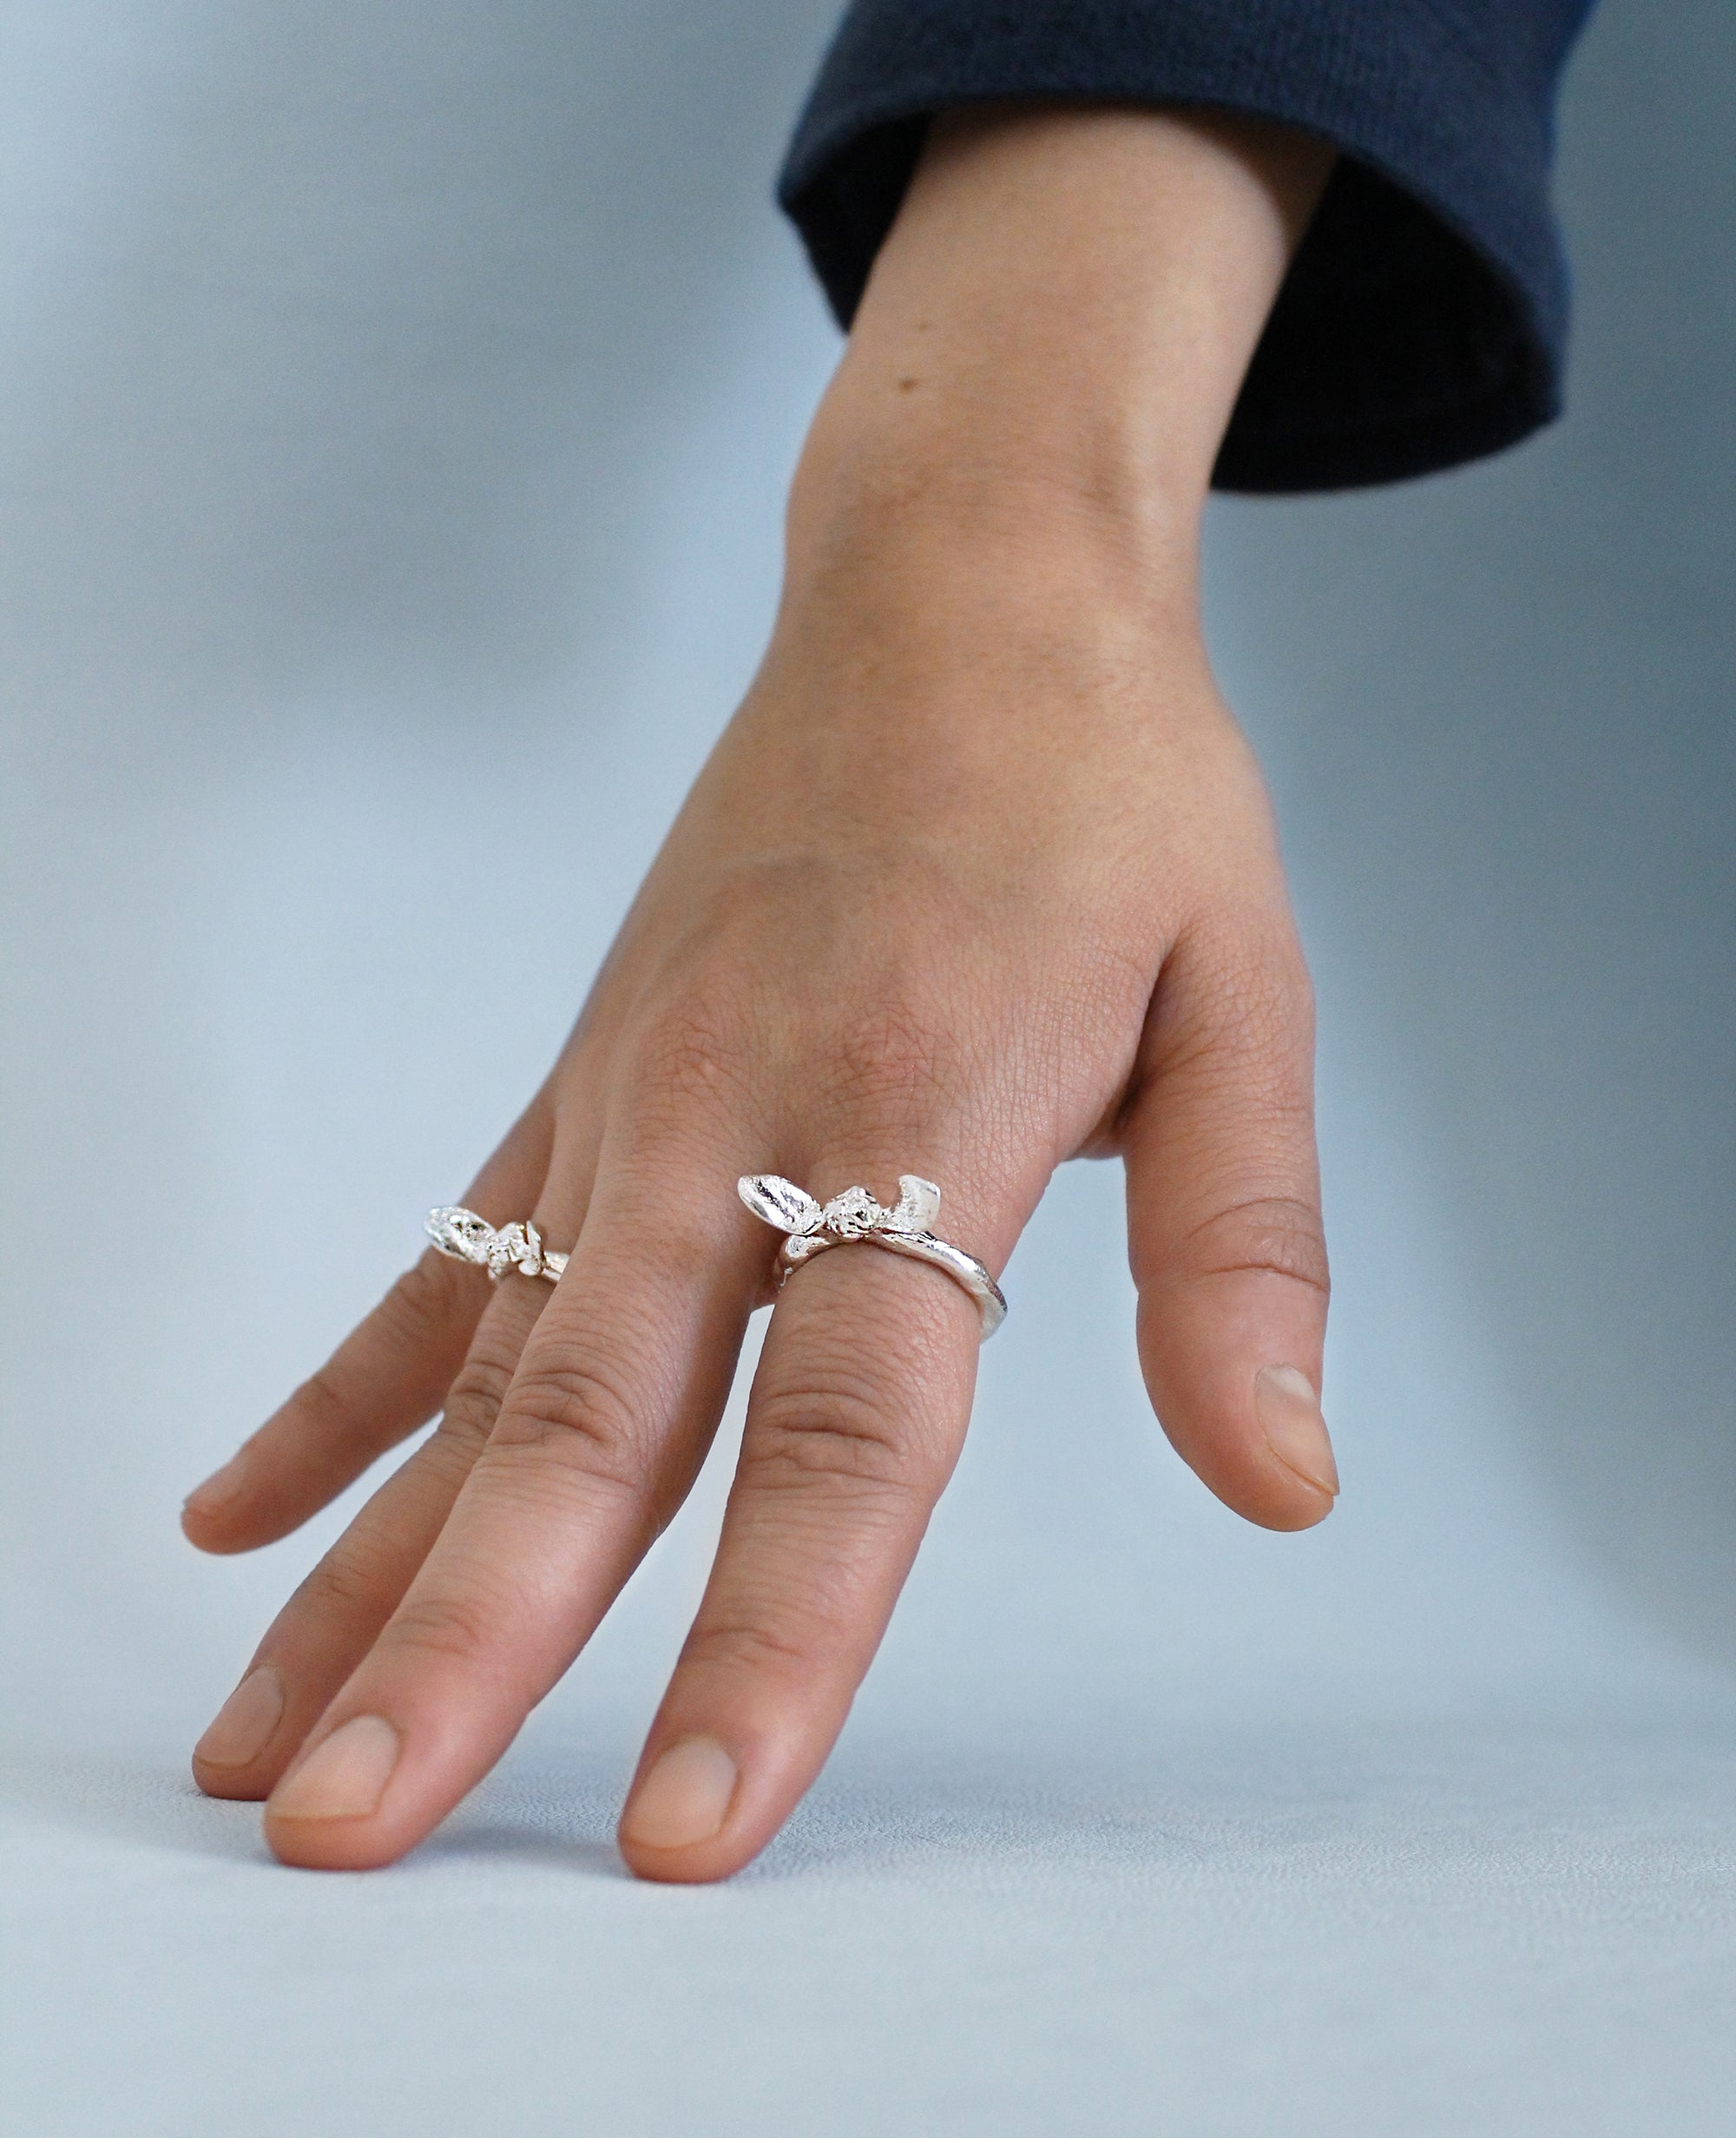 WINGS OF DESIRE // silver ring - ORA-C jewelry - handmade jewelry by Montreal based independent designer Caroline Pham